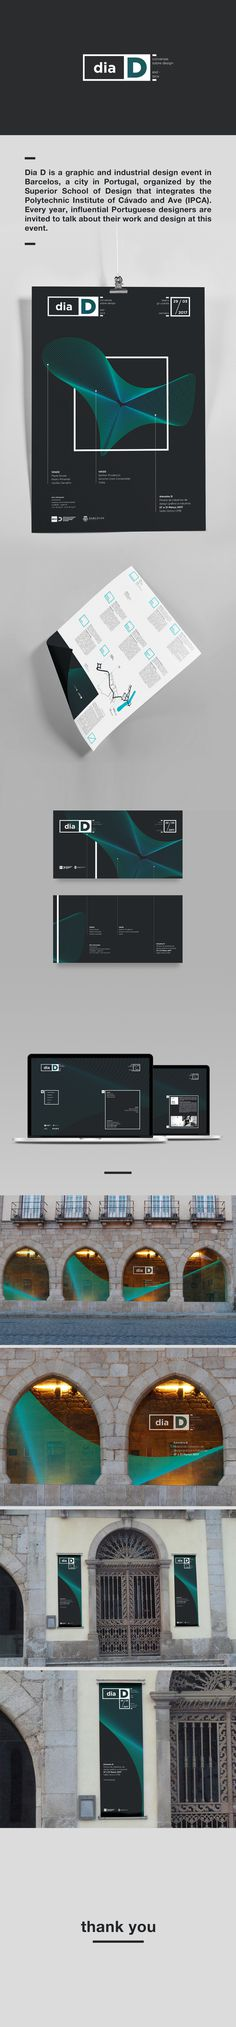 Dia D - ESD - IPCA on Behance